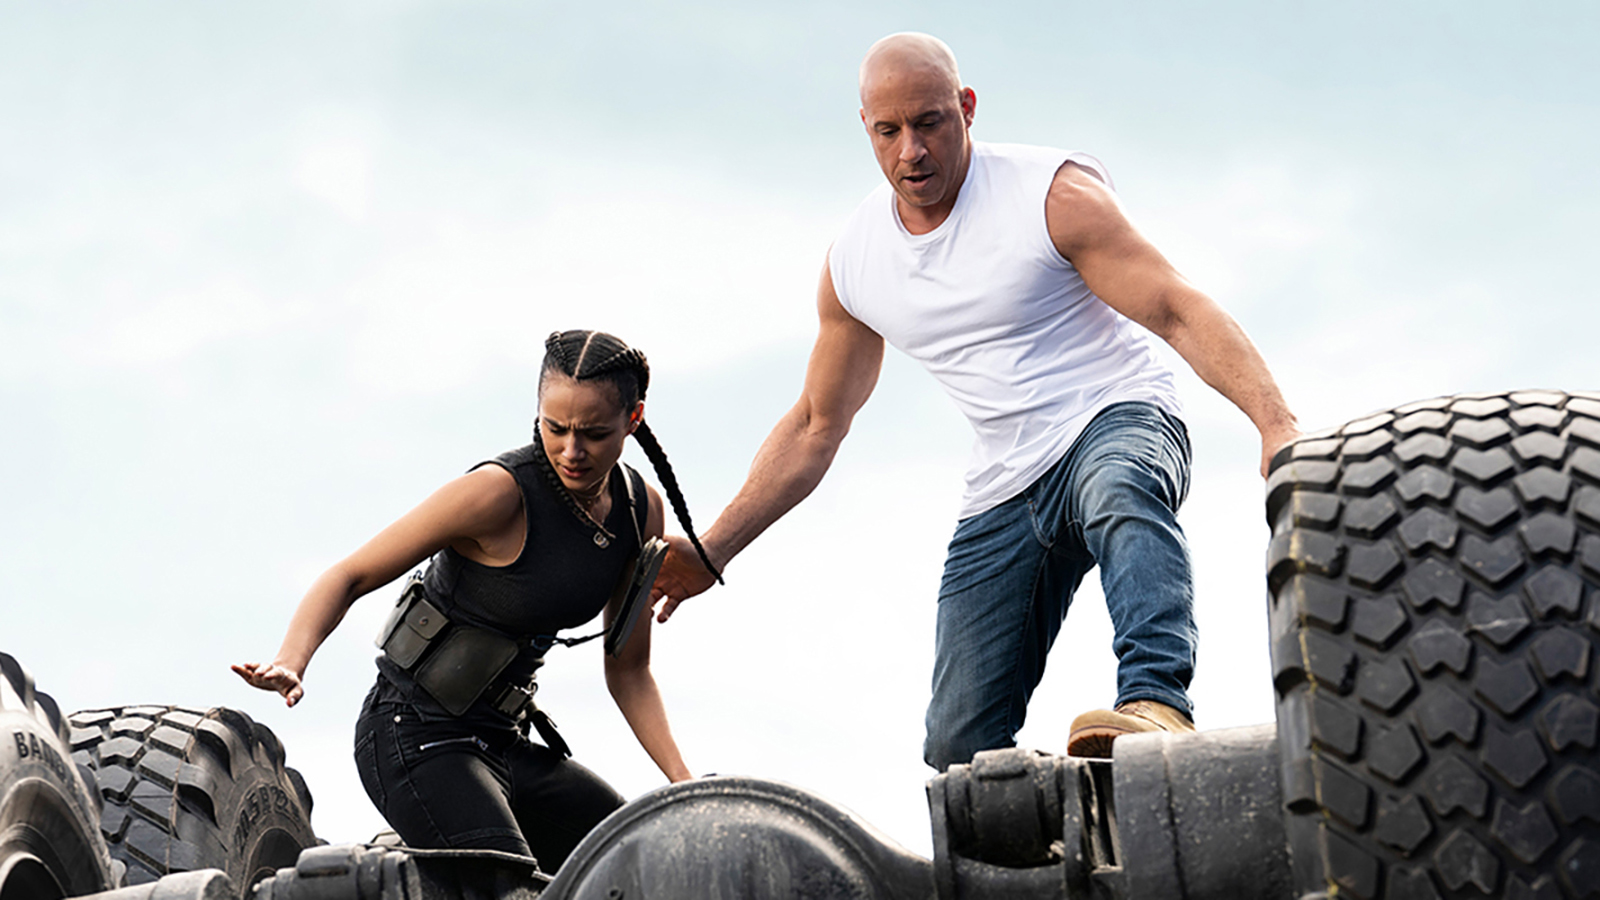 The latest Fast and Furious film has been delayed again. But there's some good news